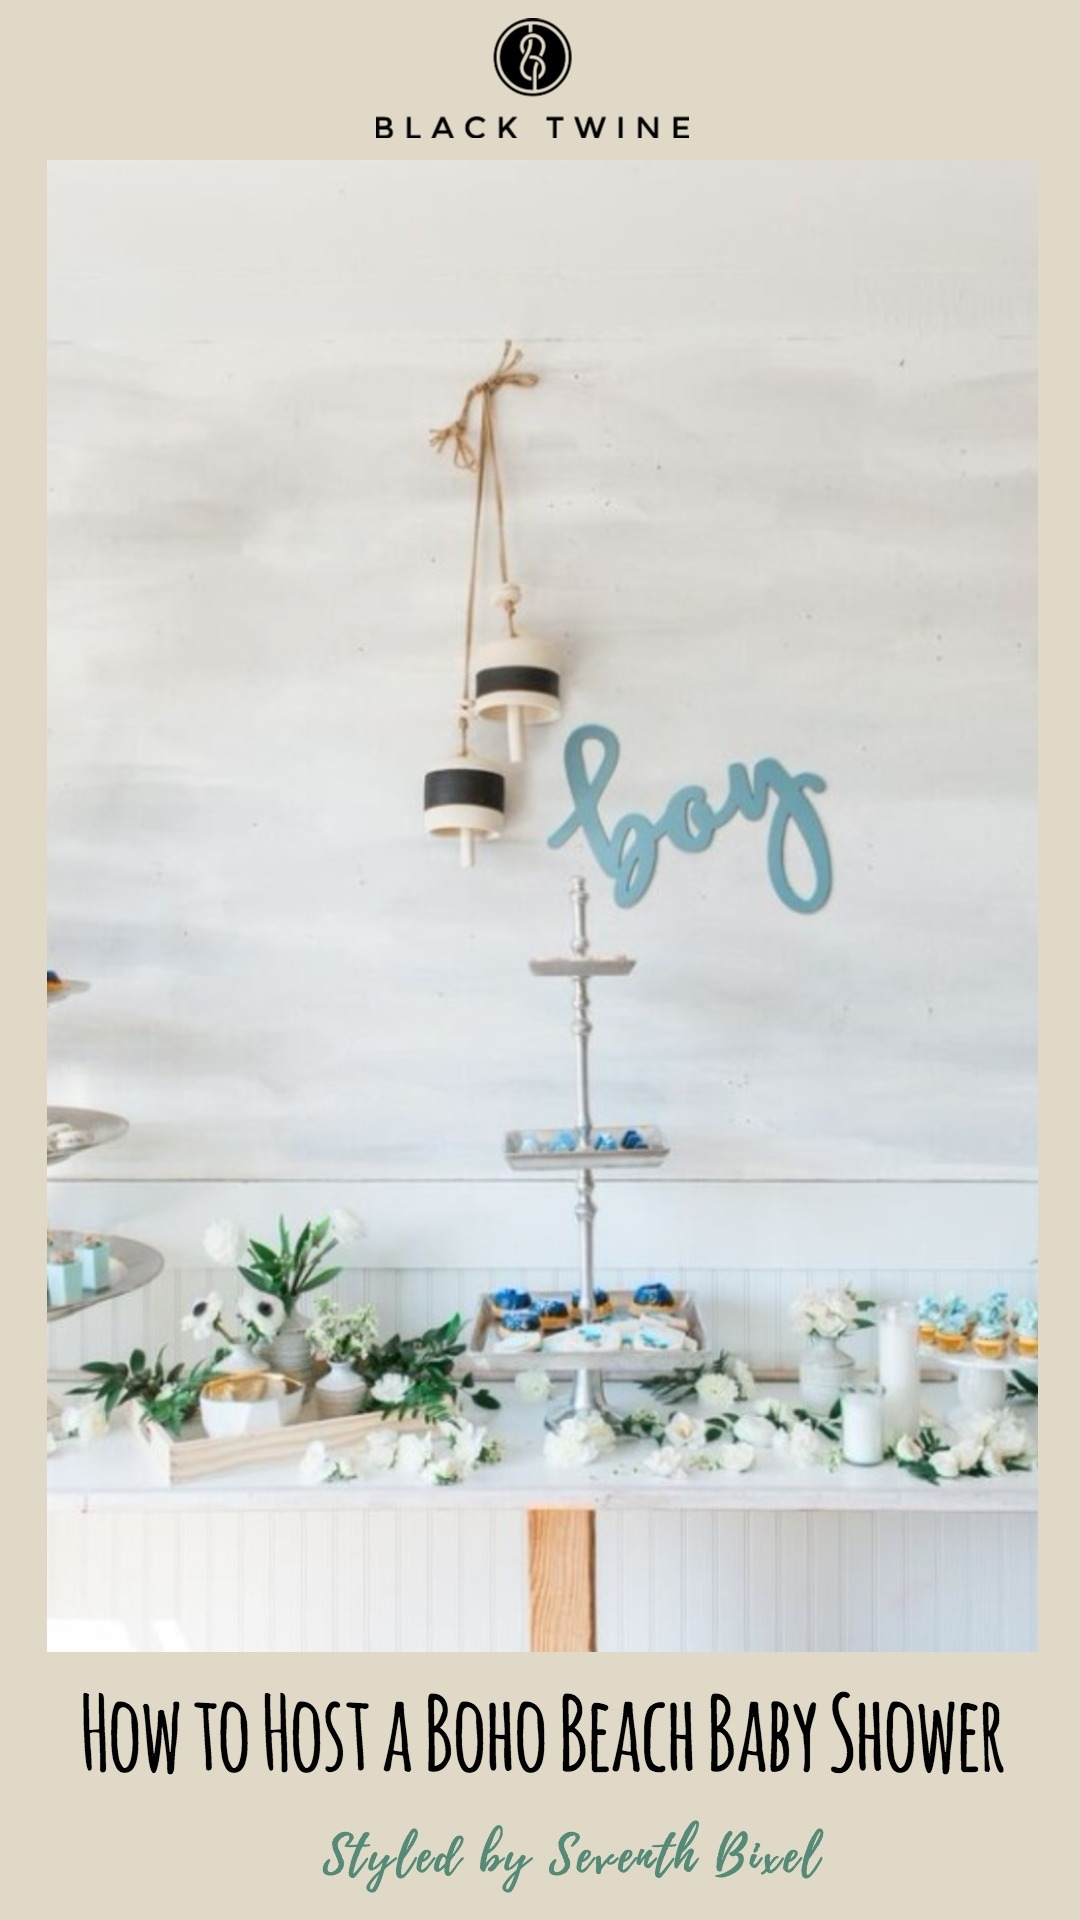 How to Host A Boho Beach Baby Shower Styled by Seventh Bixel | Black Twine